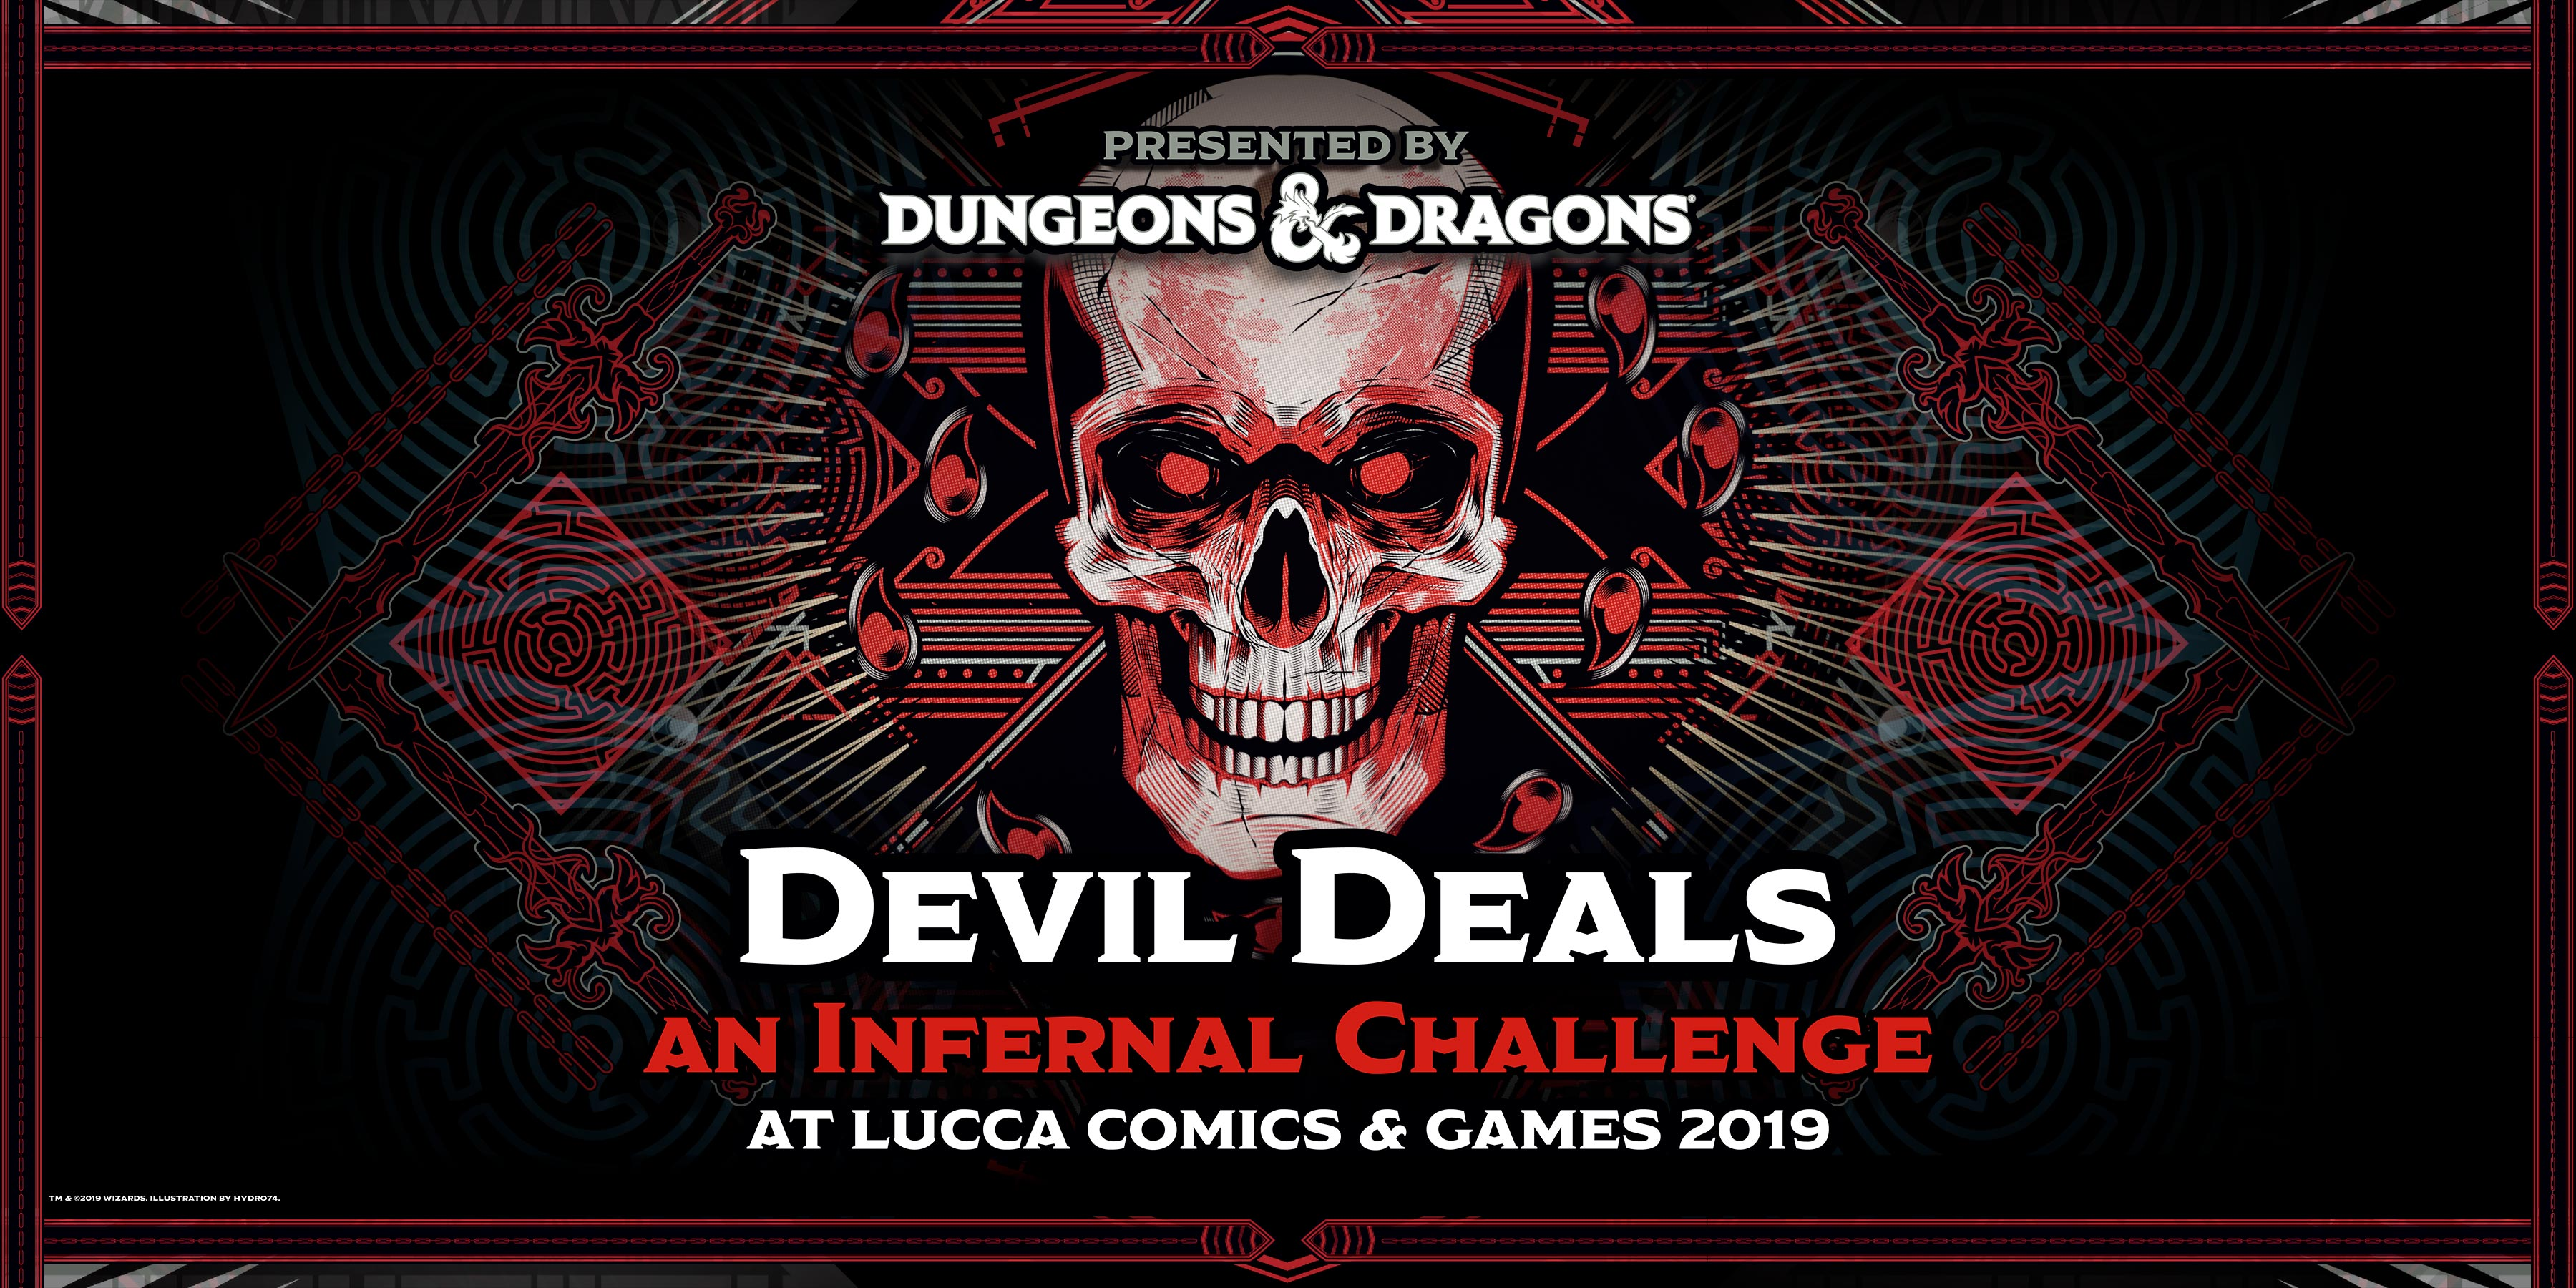 dungeons & dragons lucca comics